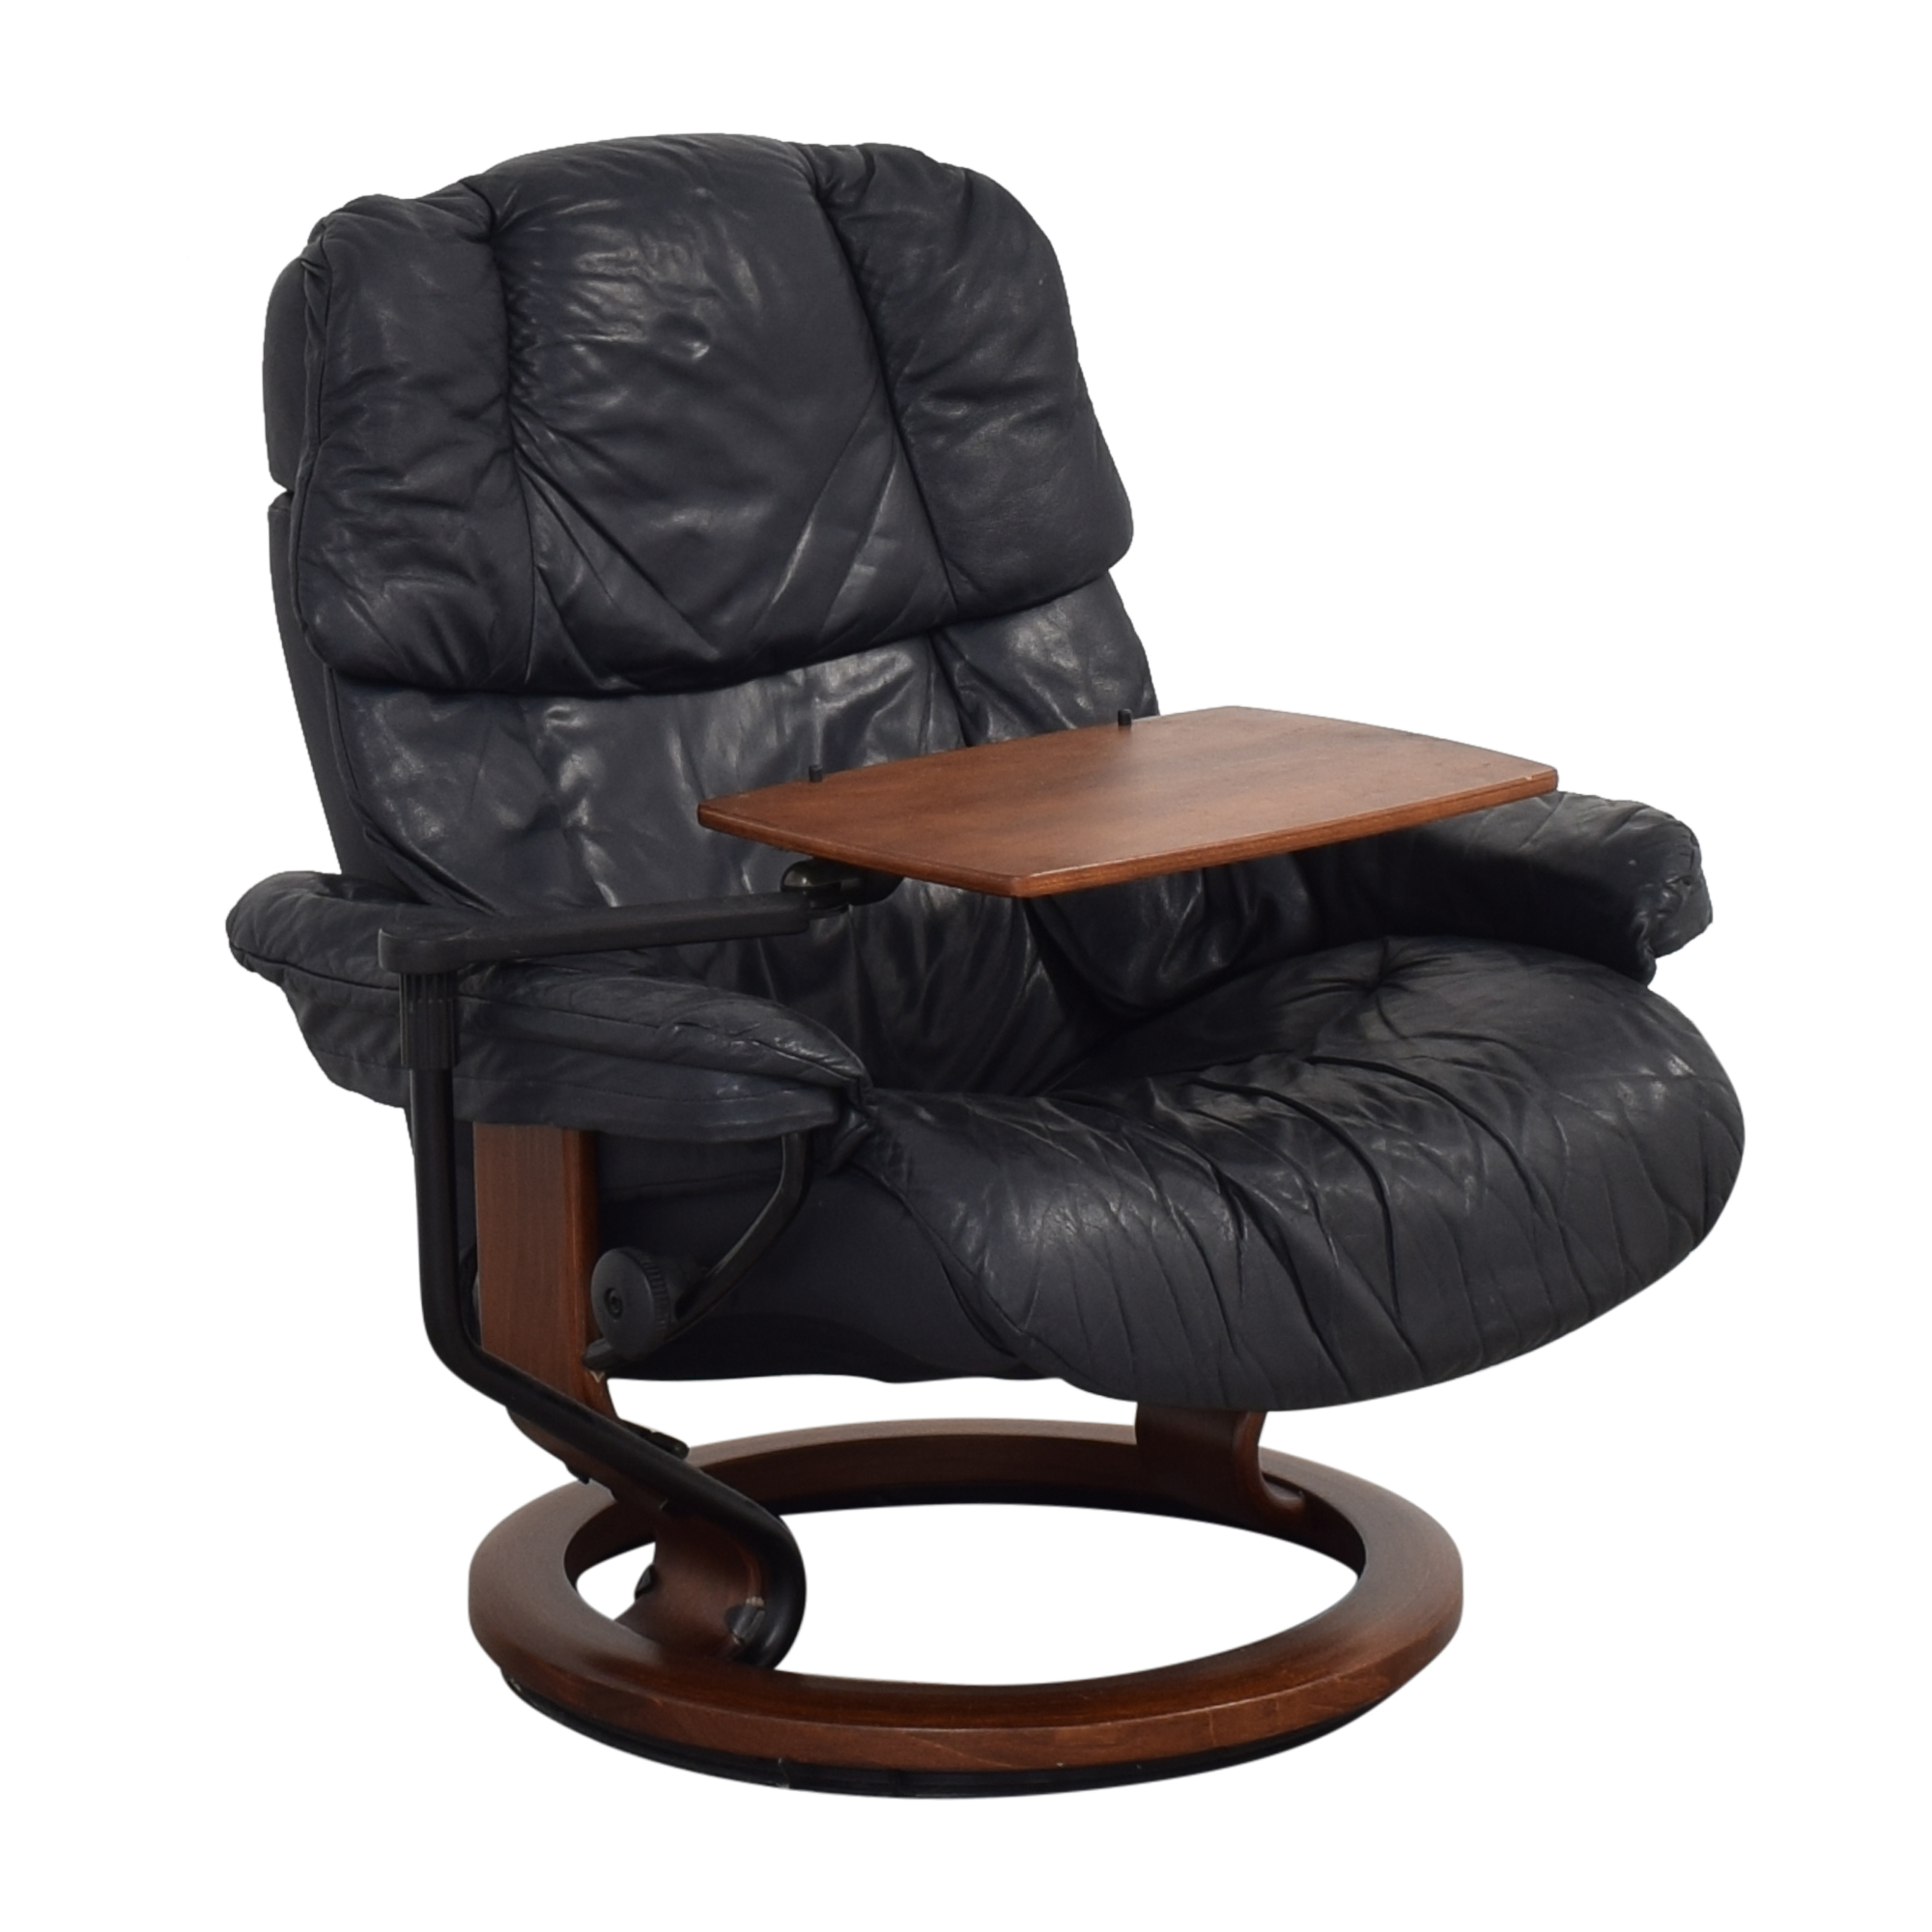 Ekornes Ekornes Stressless Reno with Footstool and Personal Table pa